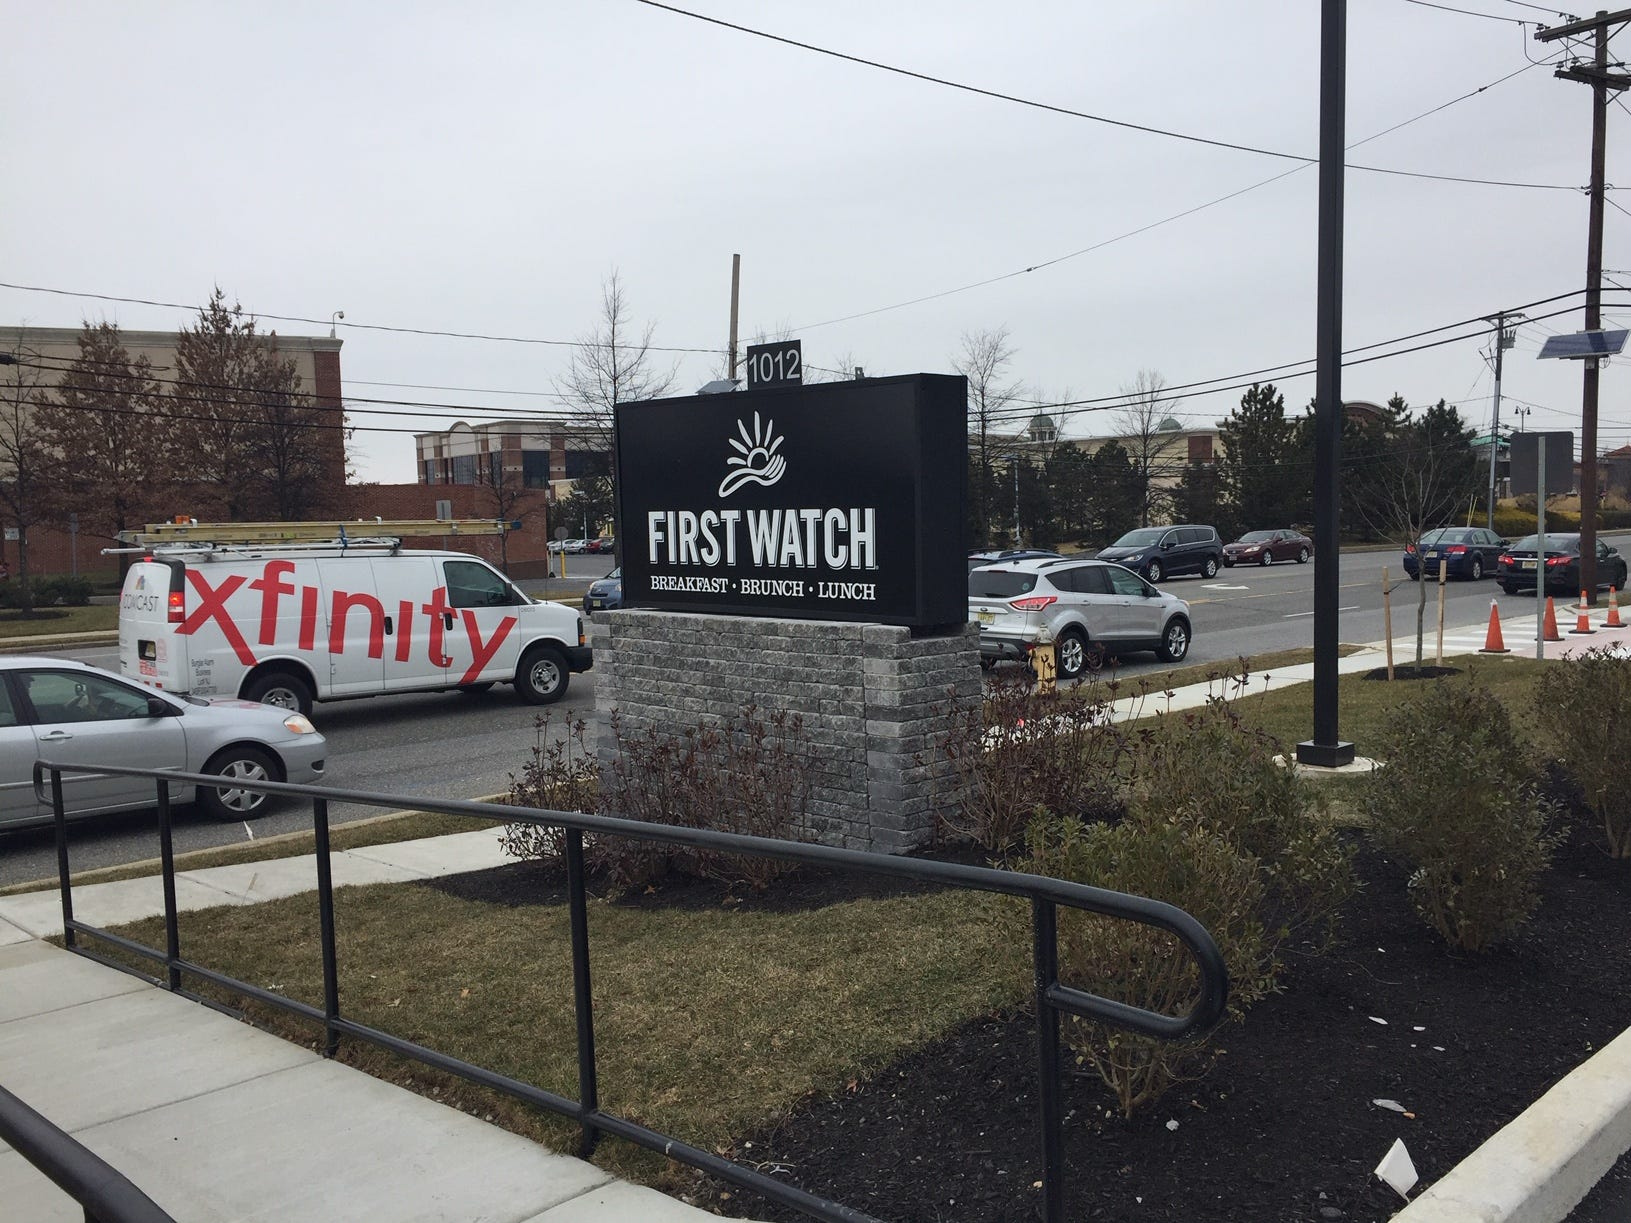 First Watch, a breakfast/lunch/brunch restaurant that started in Florida will open in Cherry Hill on Monday. It is across from Wegmans on Haddonfield Road.